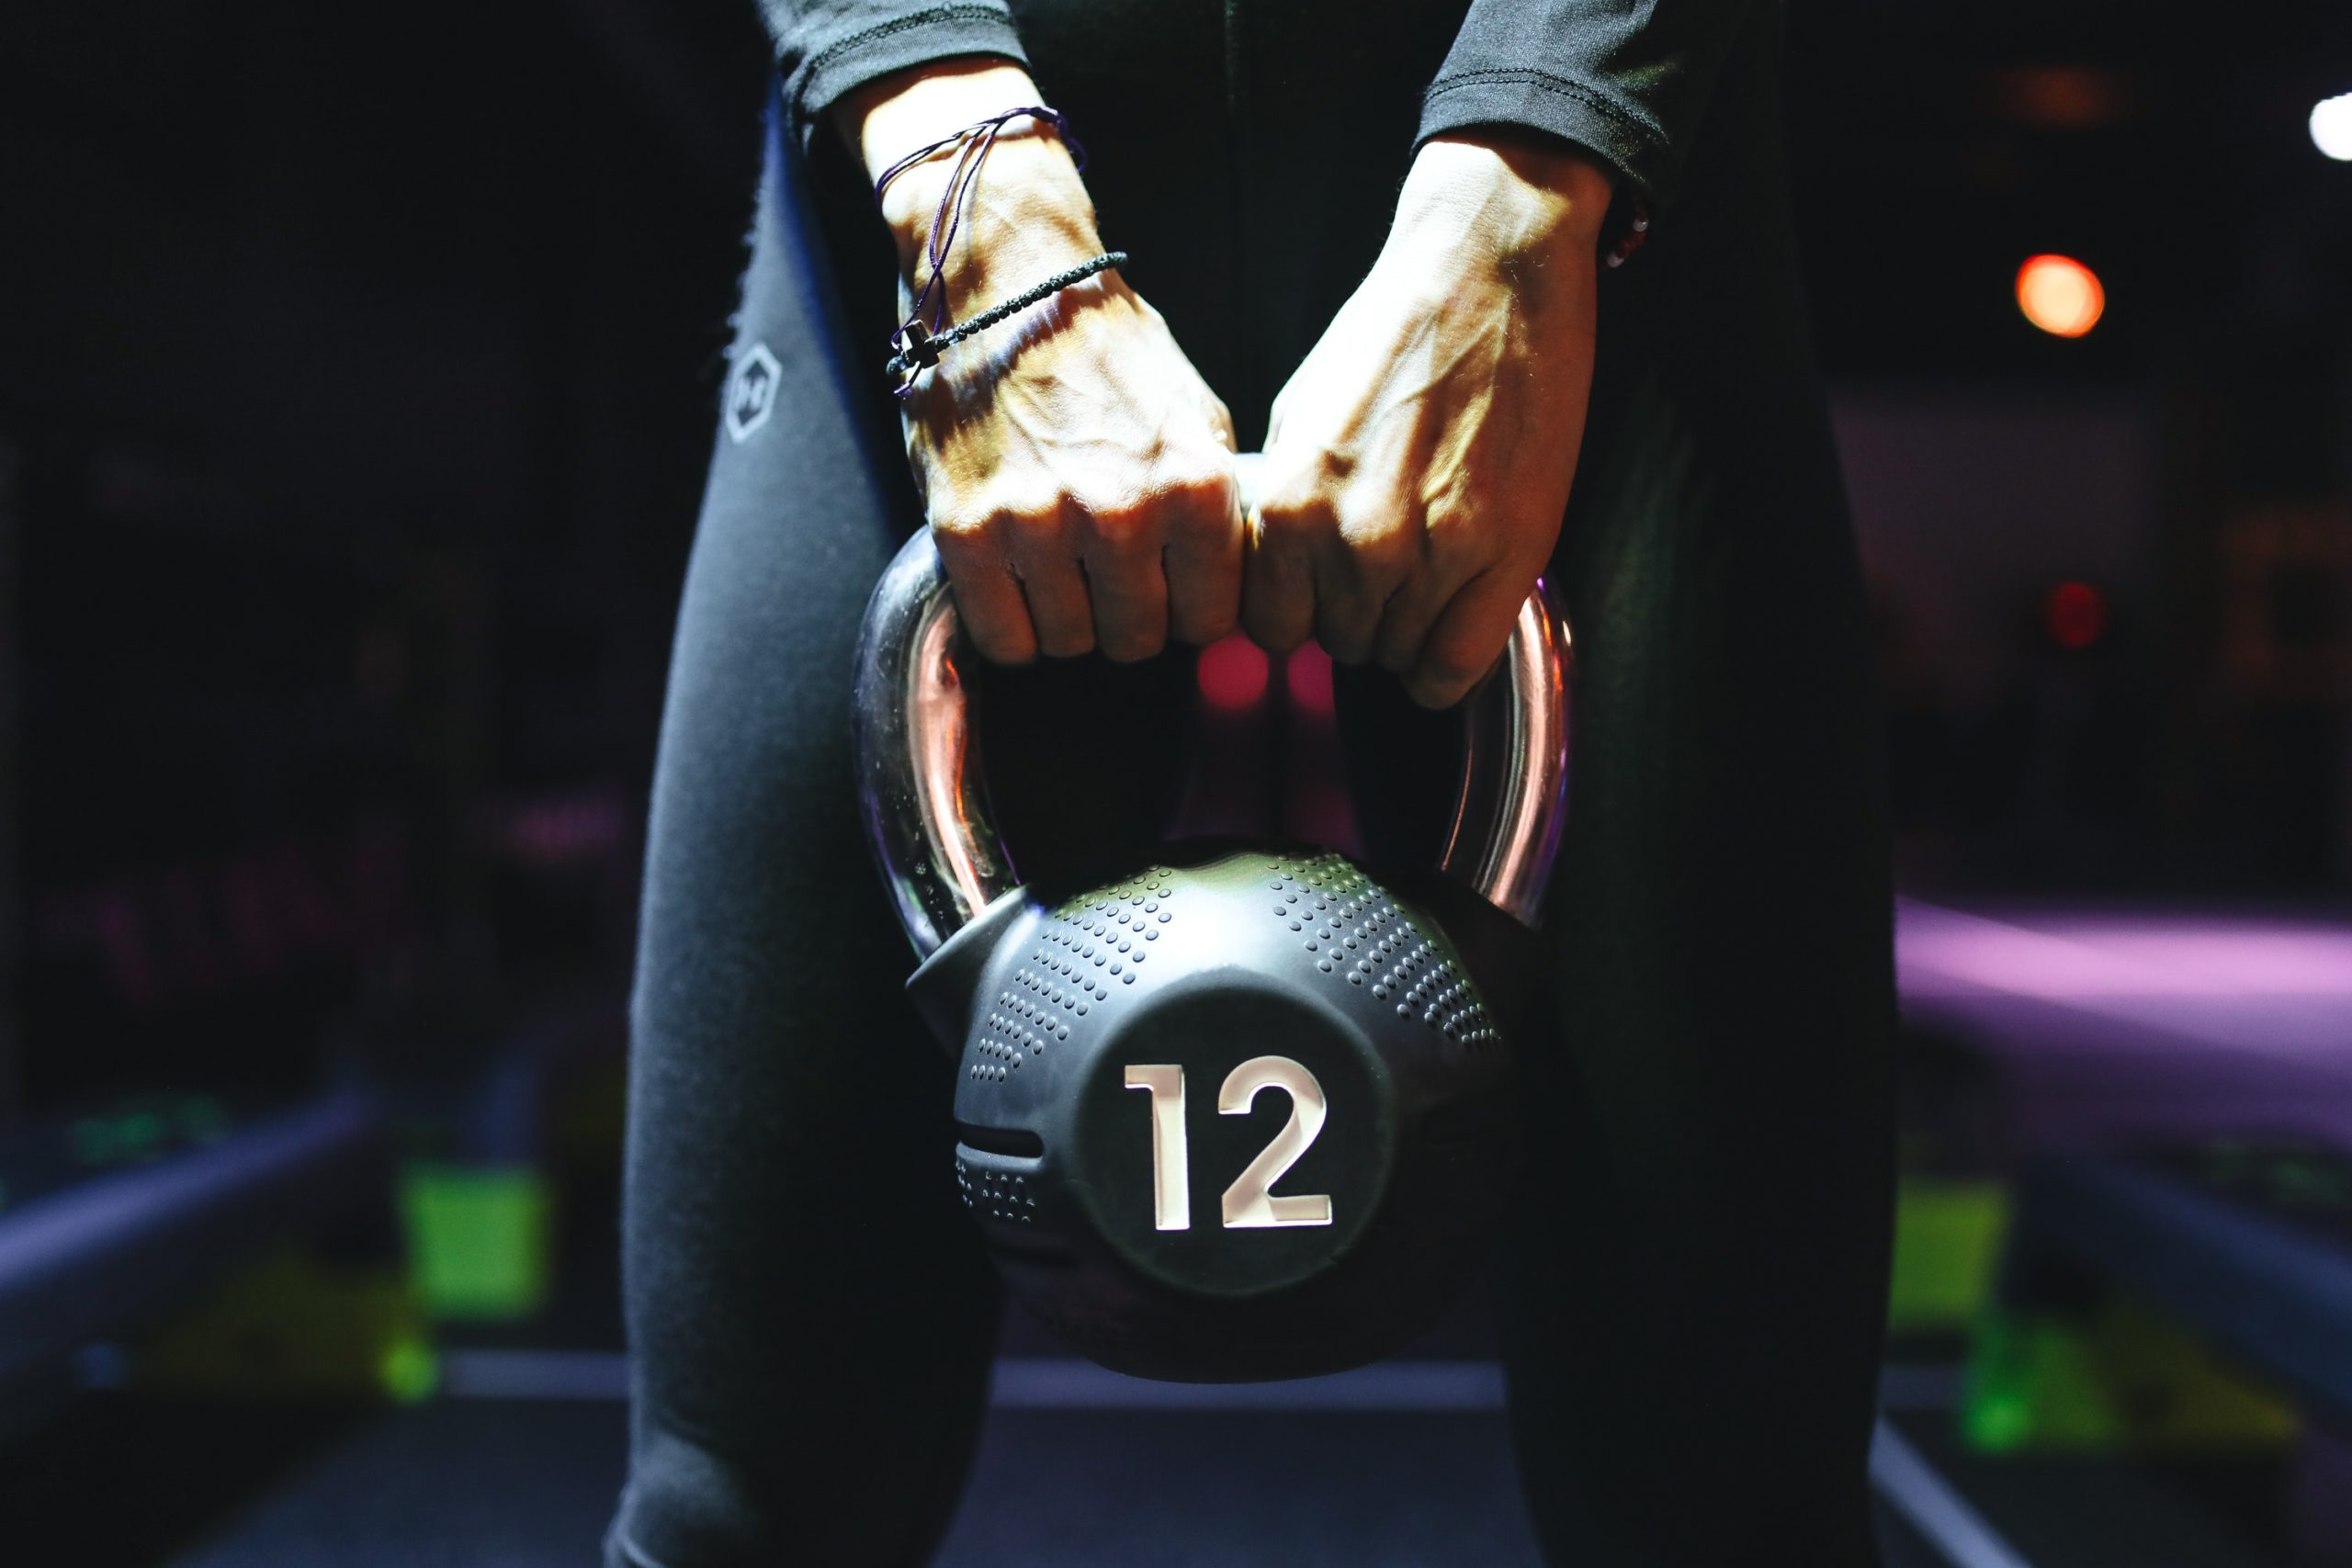 person-holding-kettlebell-3875385